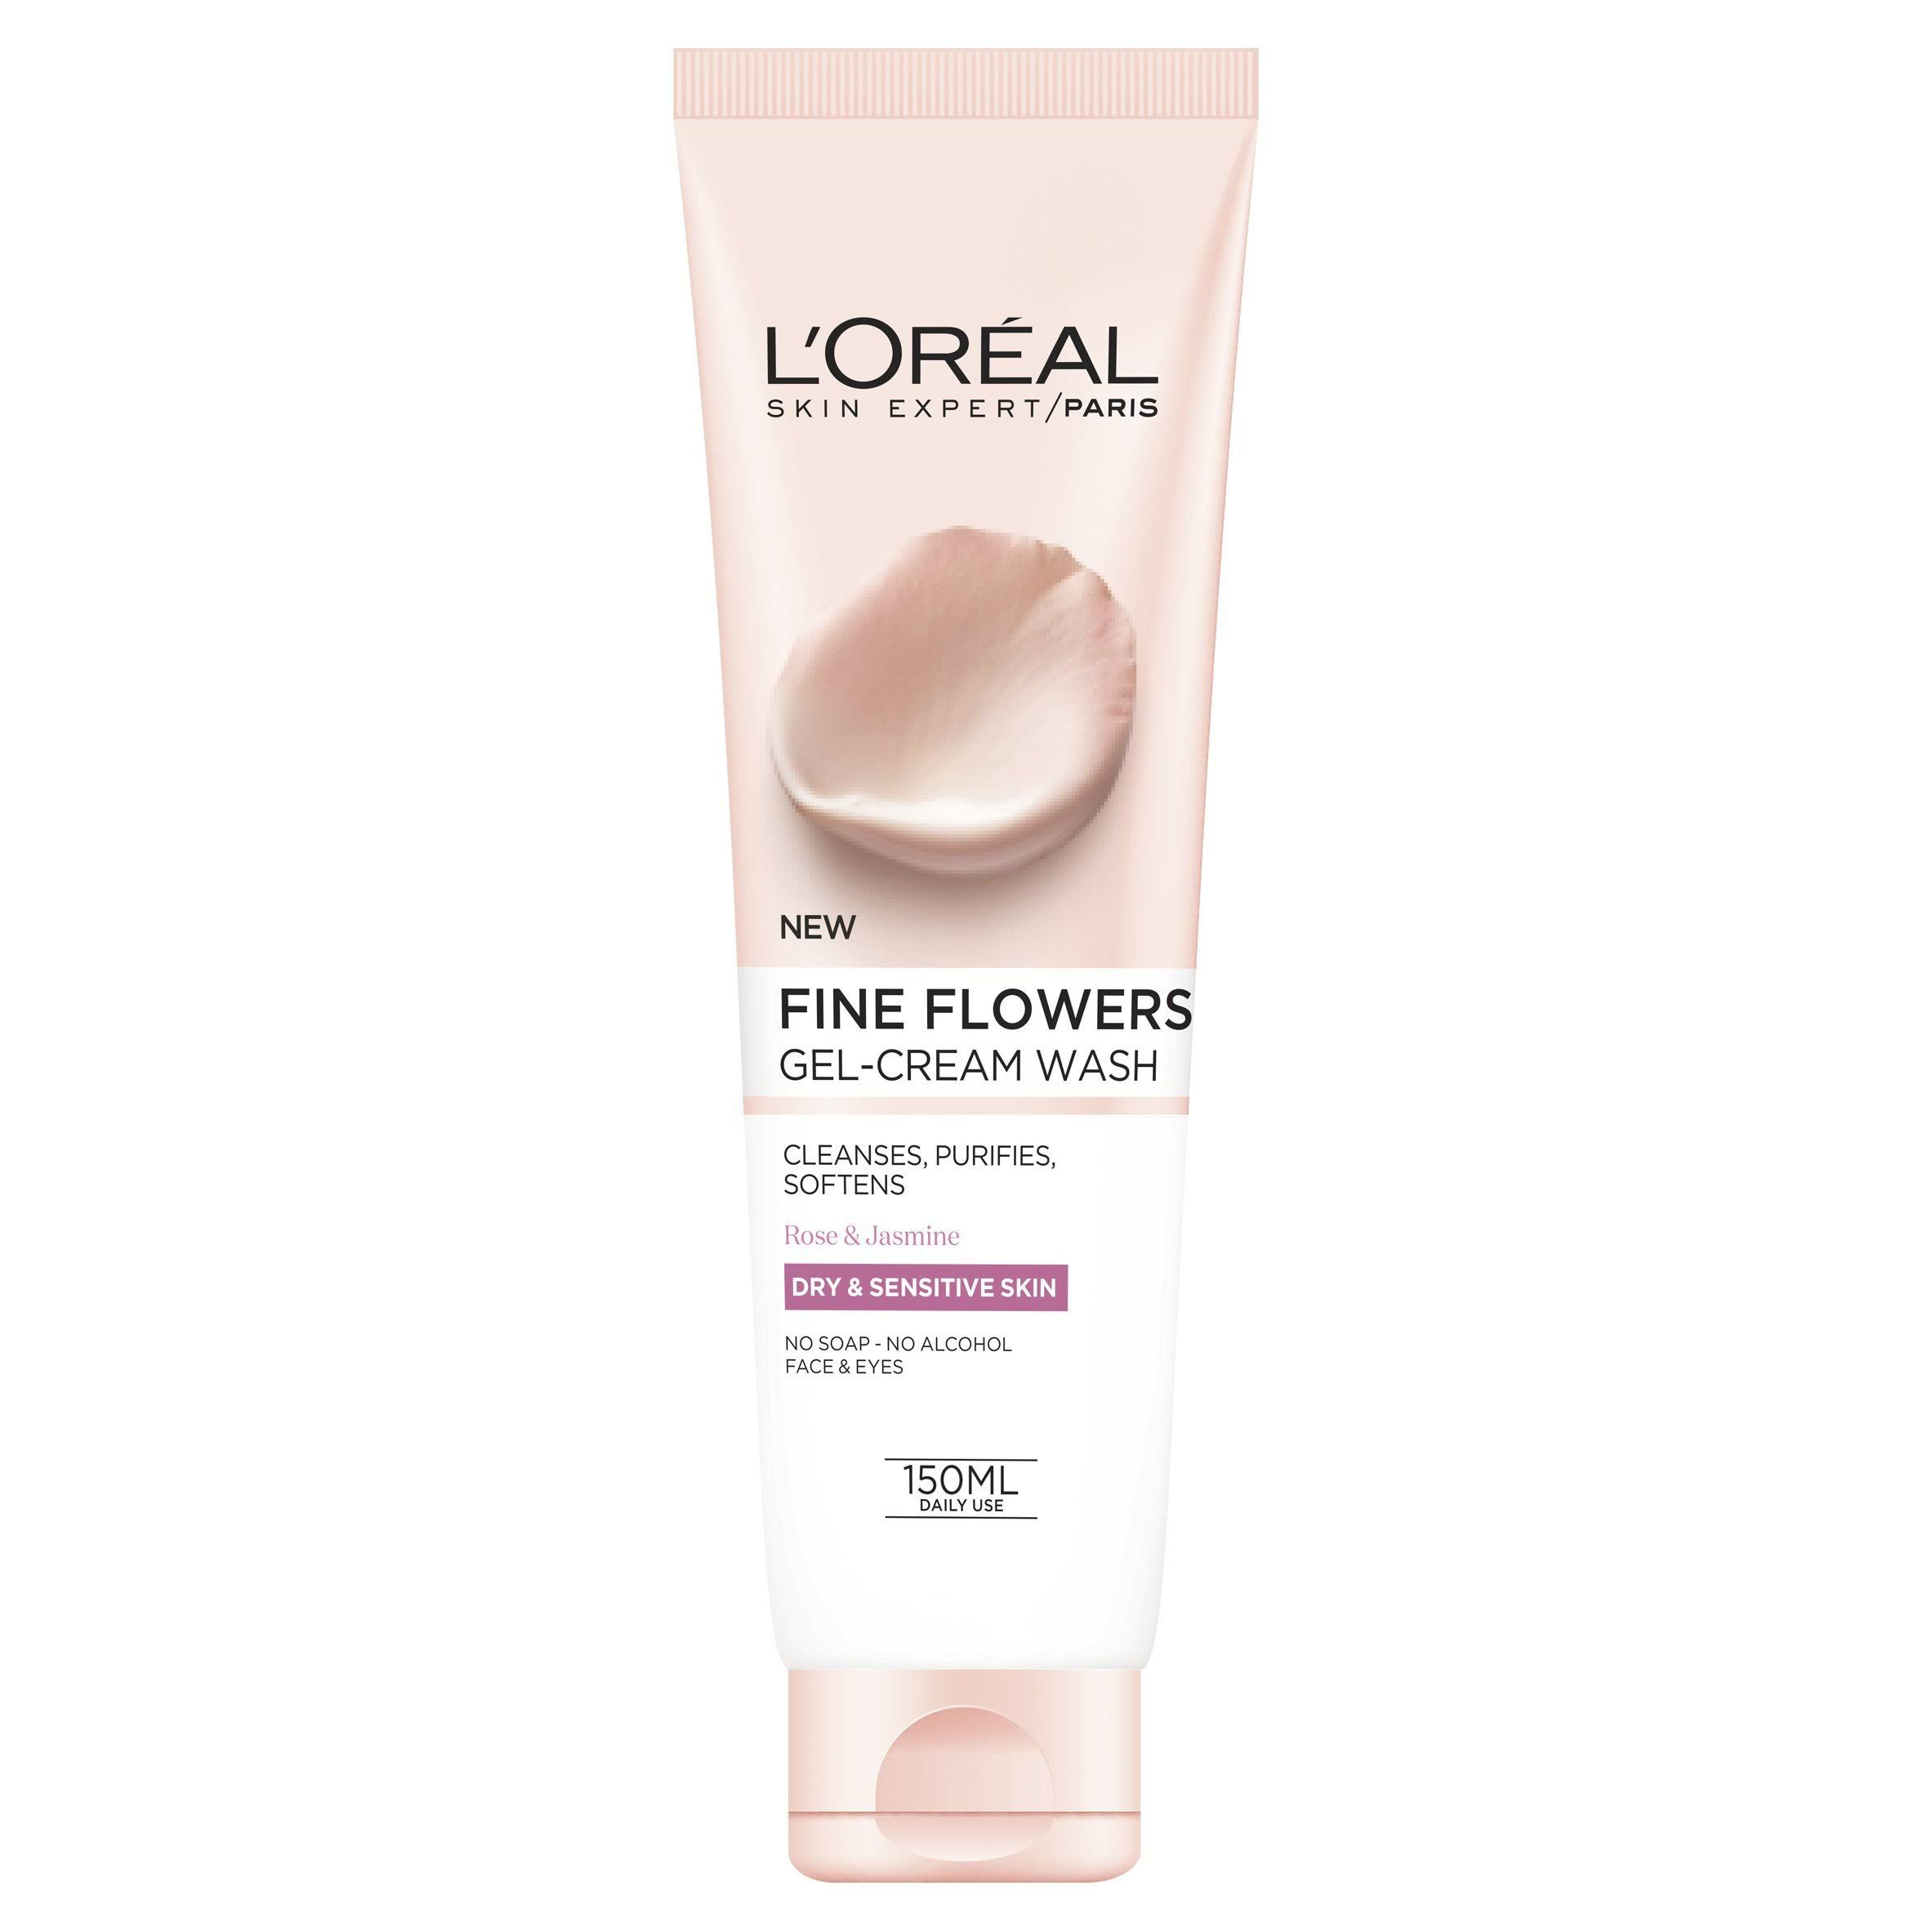 L'Oreal Paris Fine Flowers Cleansing Wash - 150ml